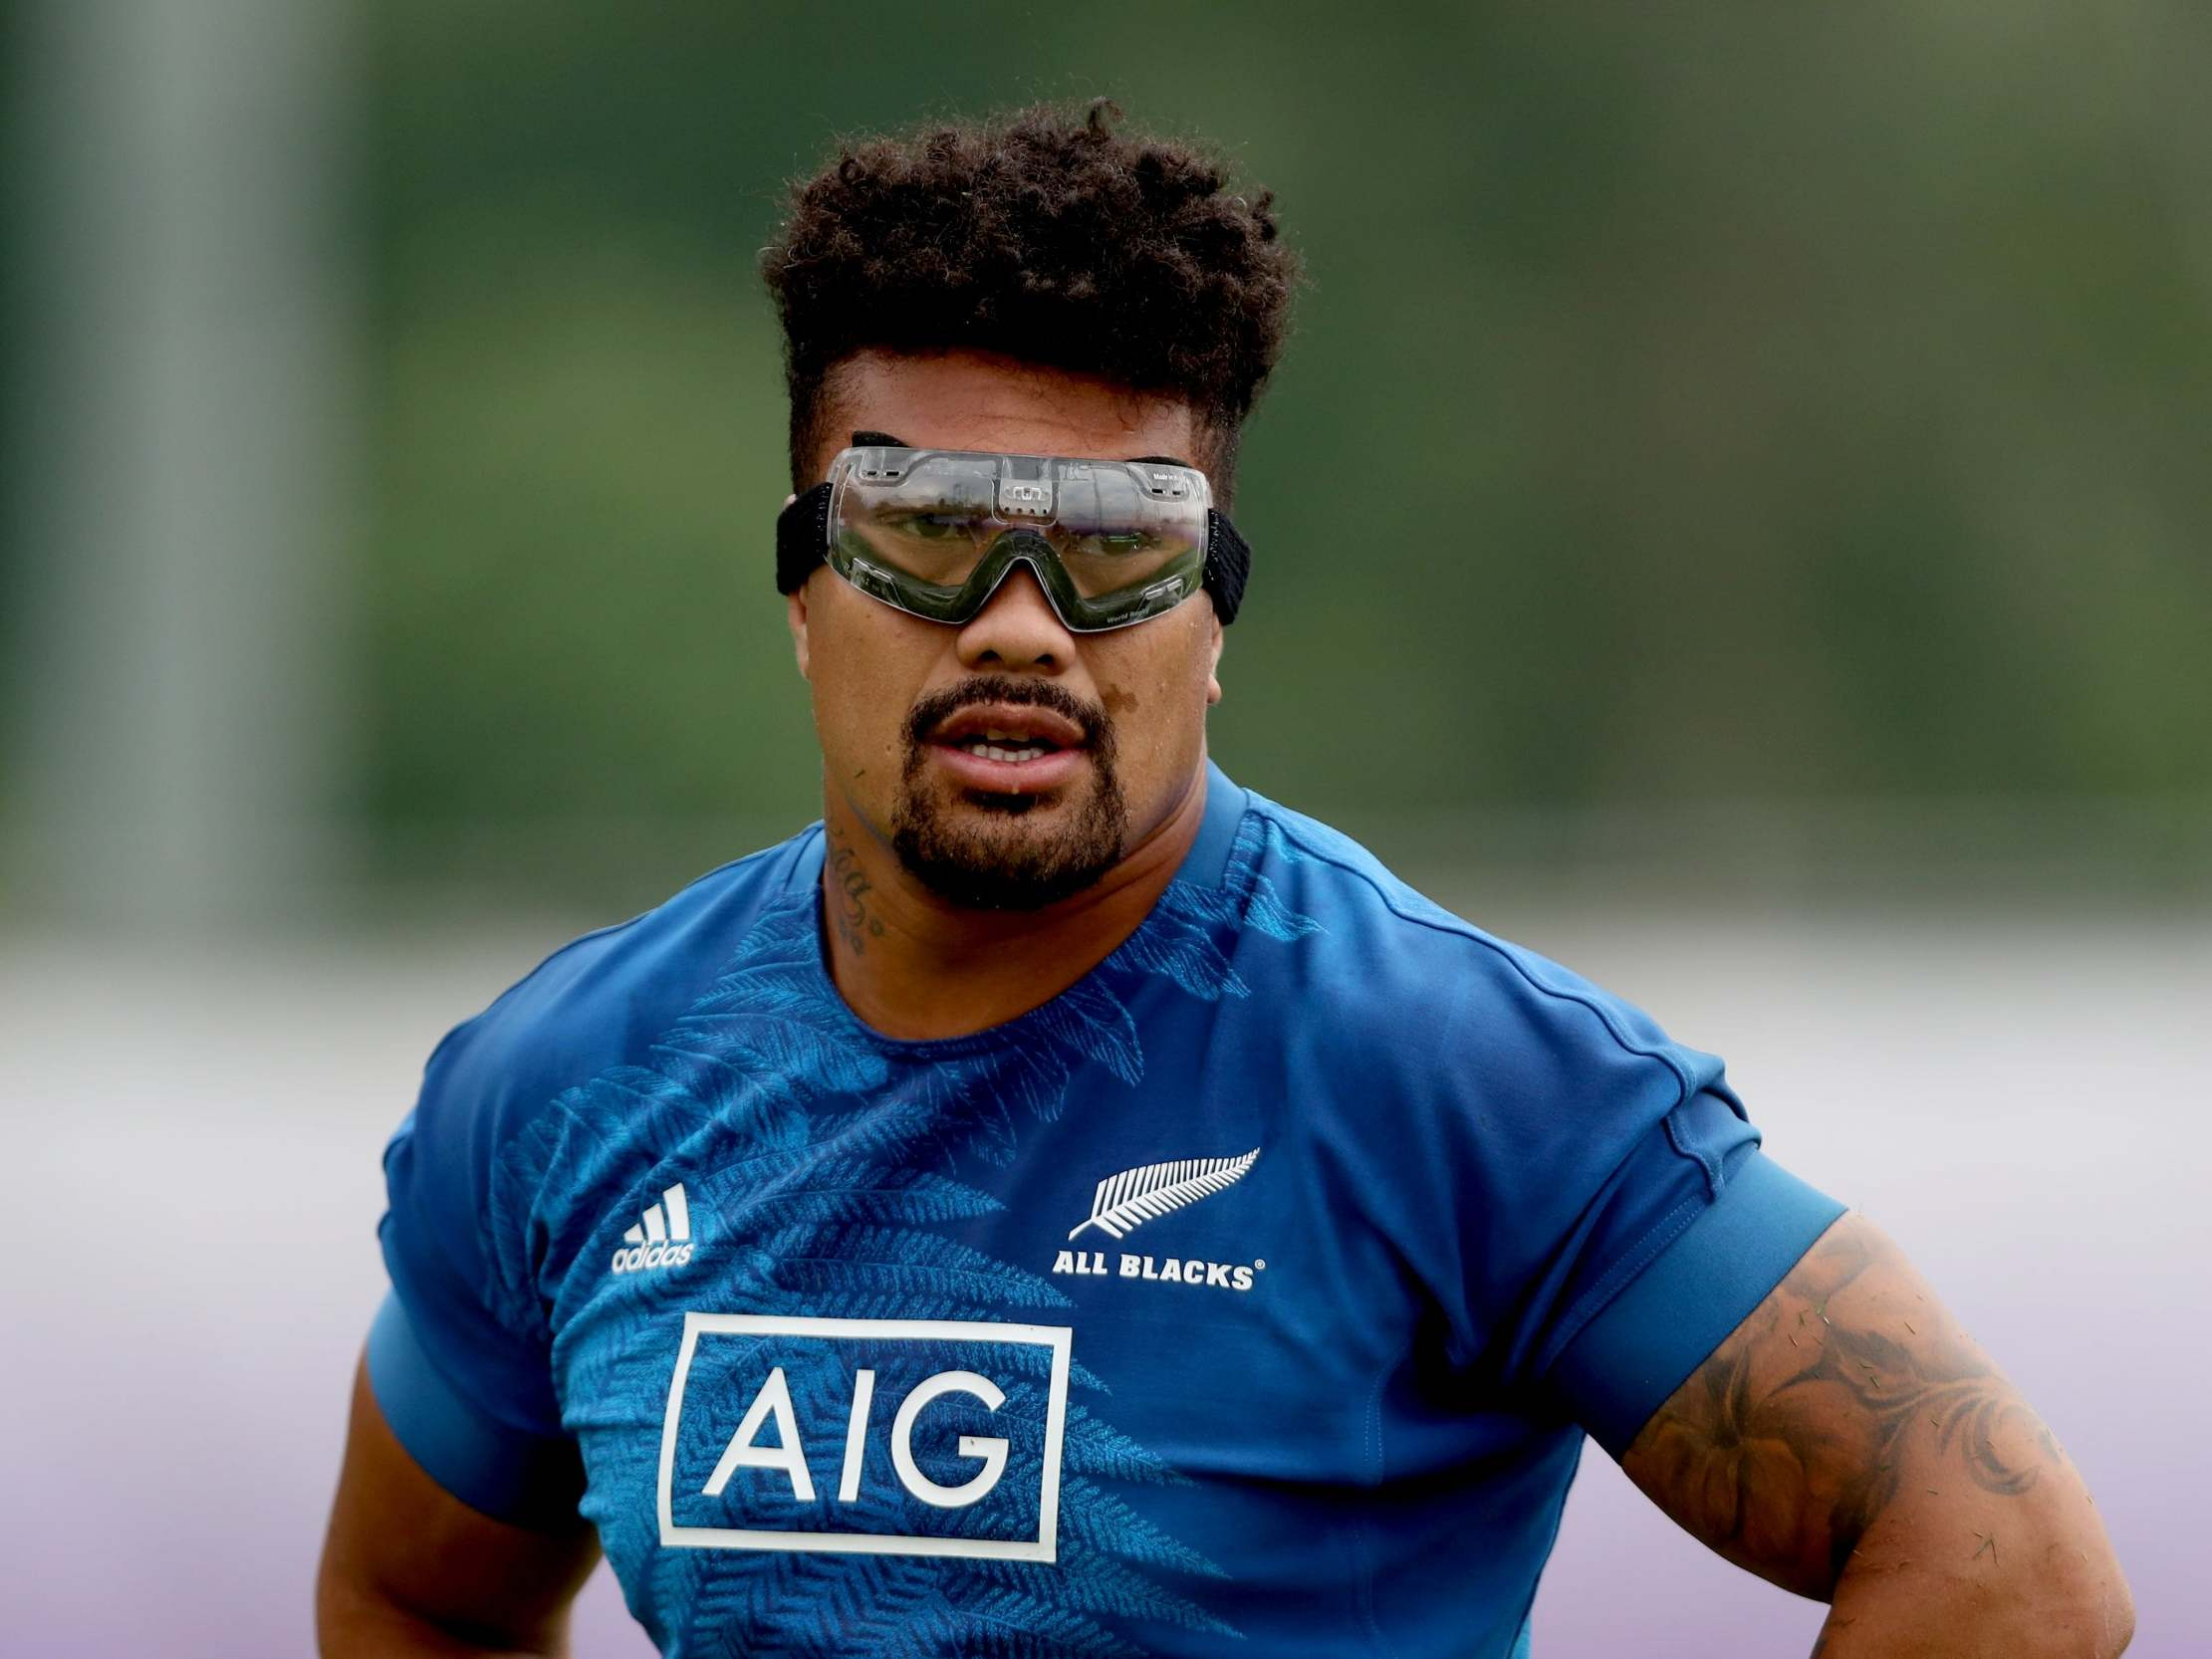 Rugby World Cup 2019 New Zealand S Ardie Savea To Make History As First Player To Wear Goggles The Independent The Independent